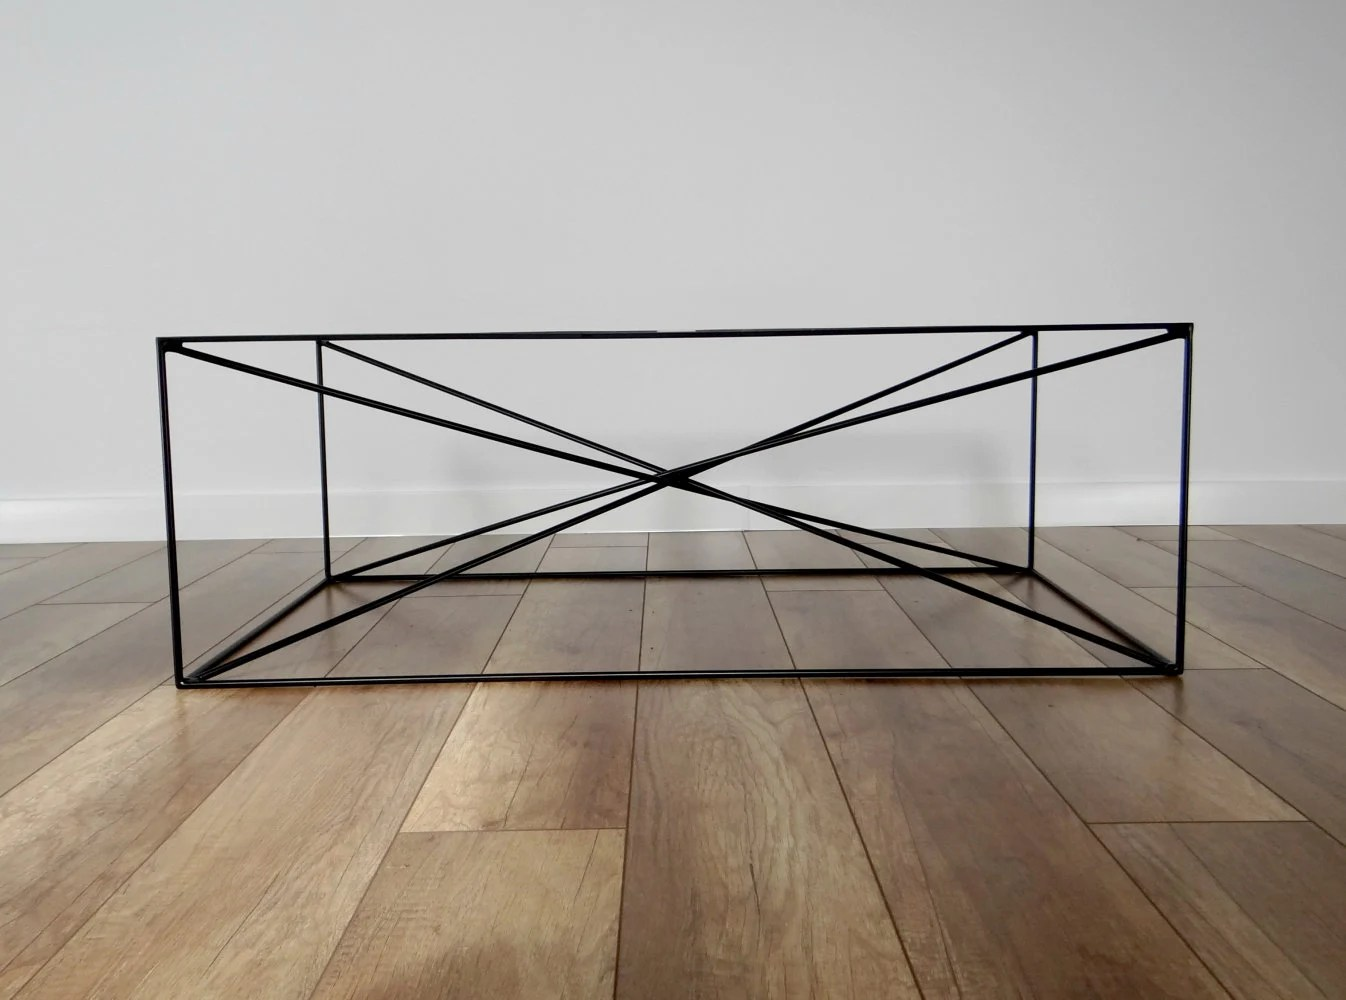 spider steel coffee table base 100x60cm large modern coffee table legs black metal coffee table legs industrial from stalovestudio